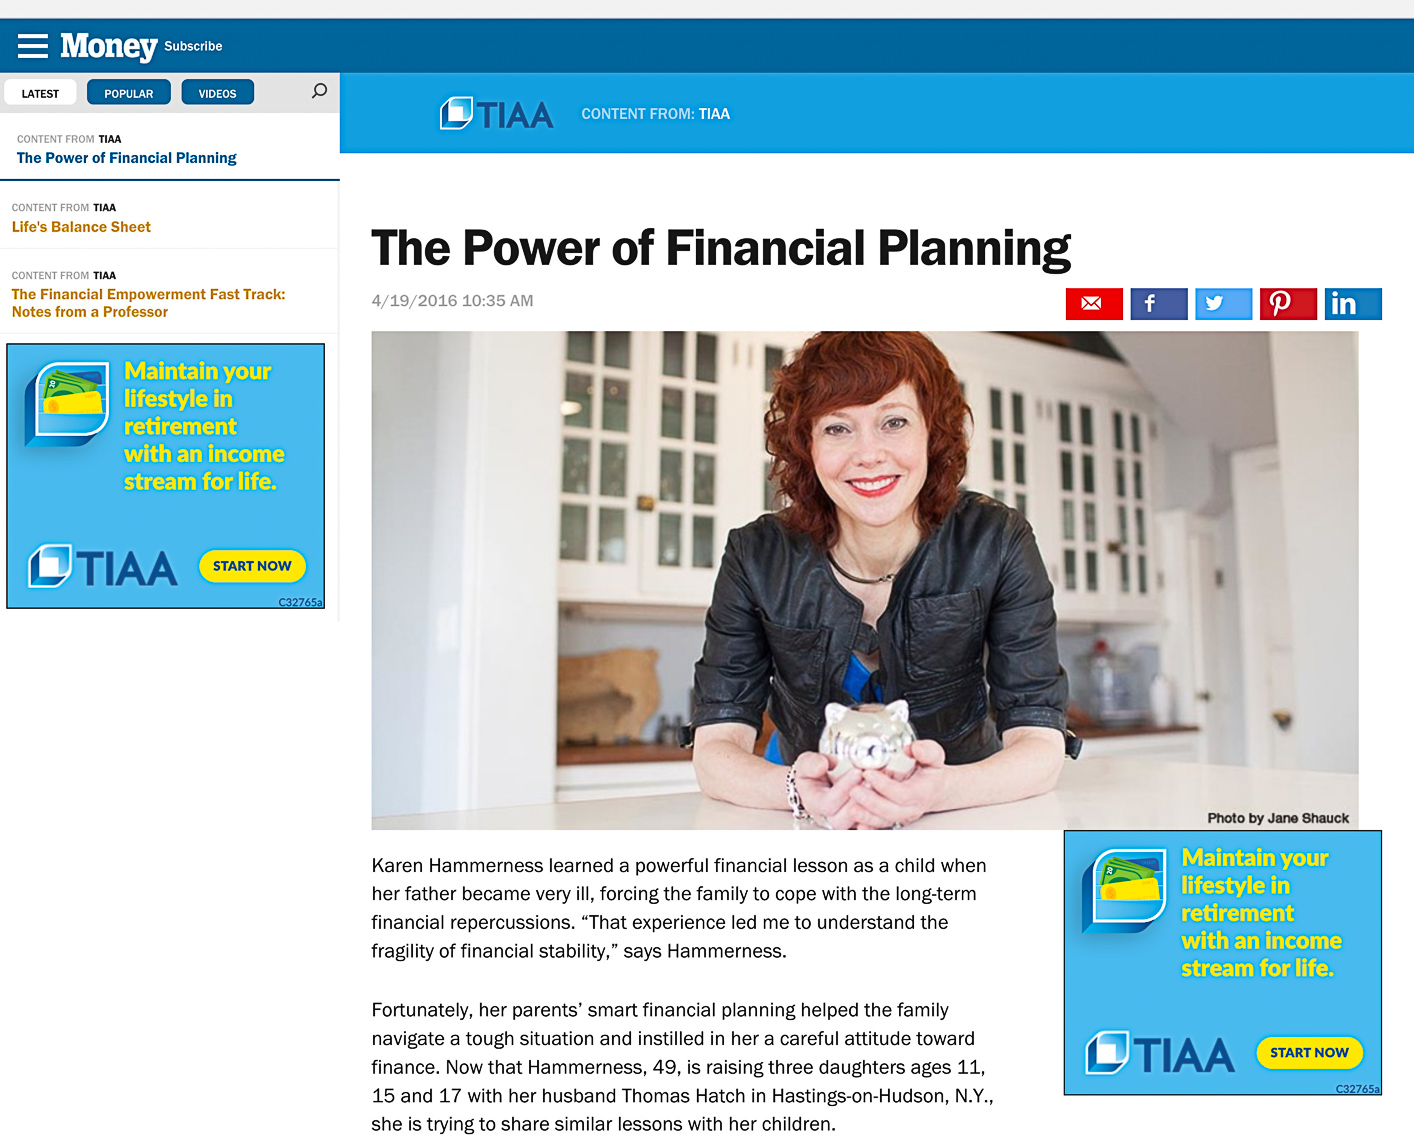 0004_0001_money_magazine_tiaa_cref_karen_hammerness_hartford_ct_editorial_corporate_photographer_photojane